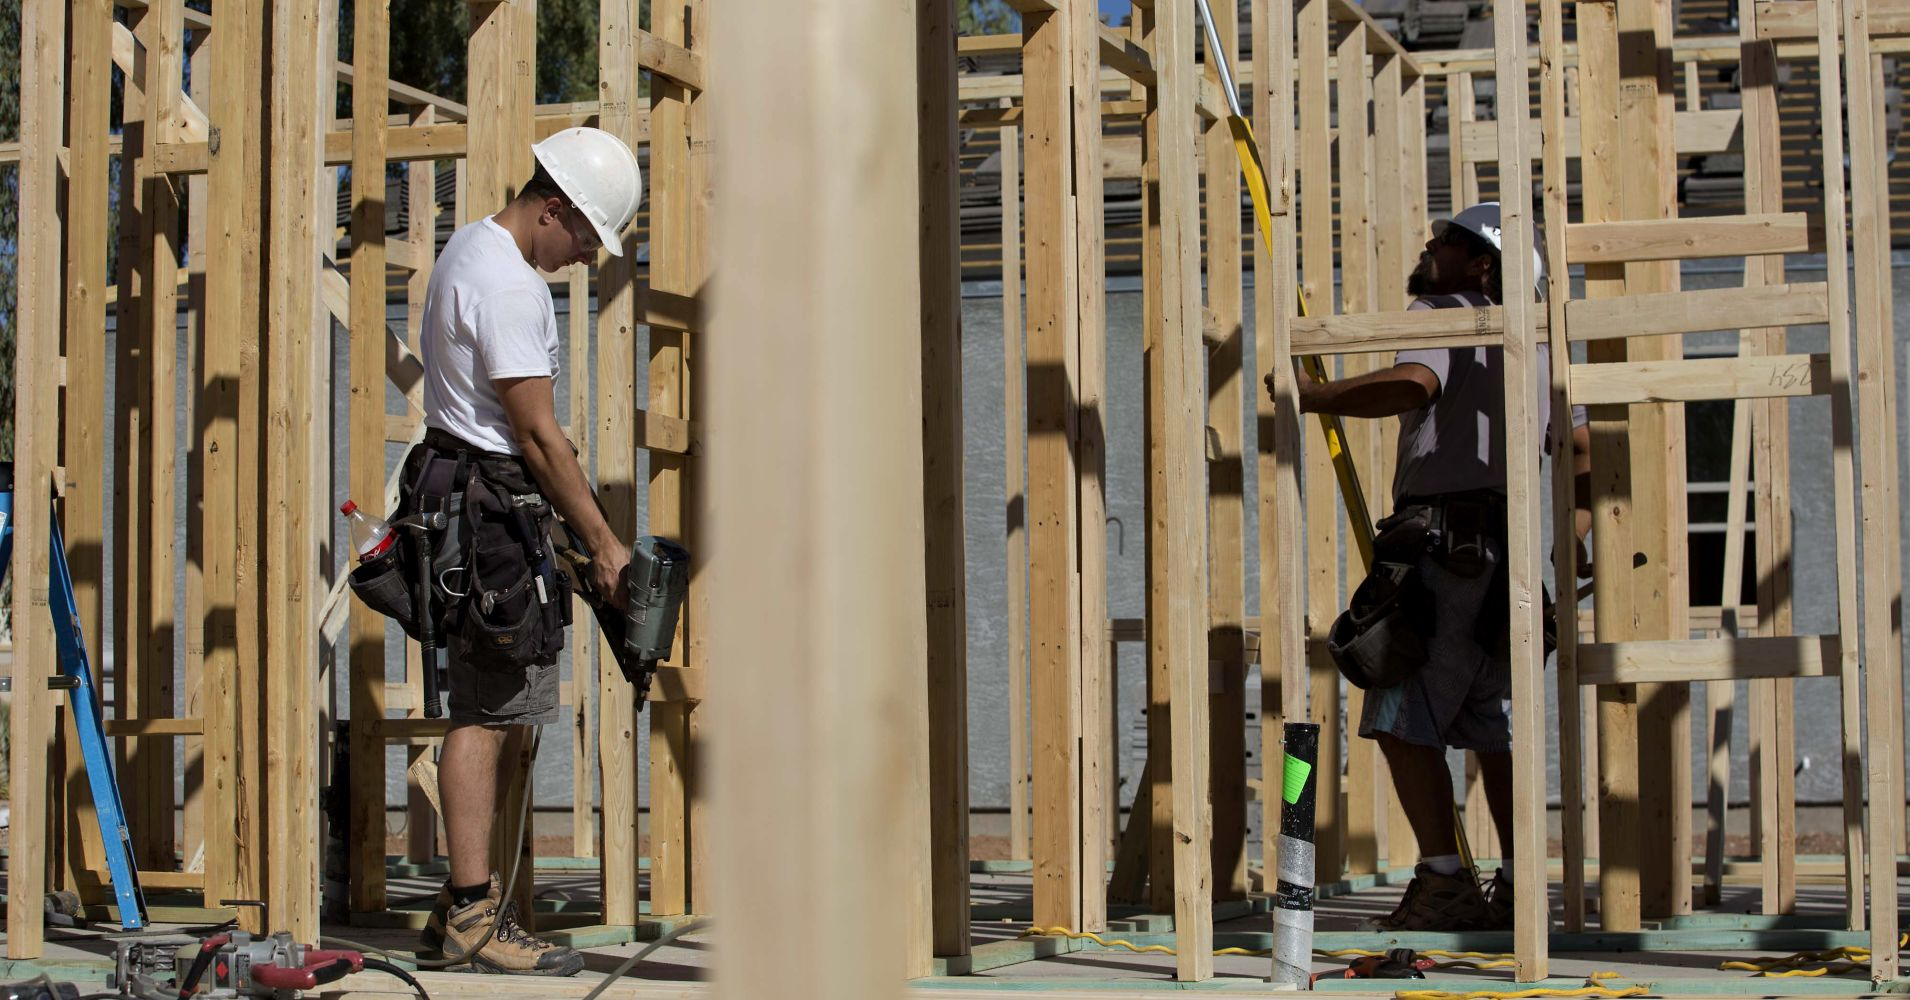 The low-priced home shortage continues